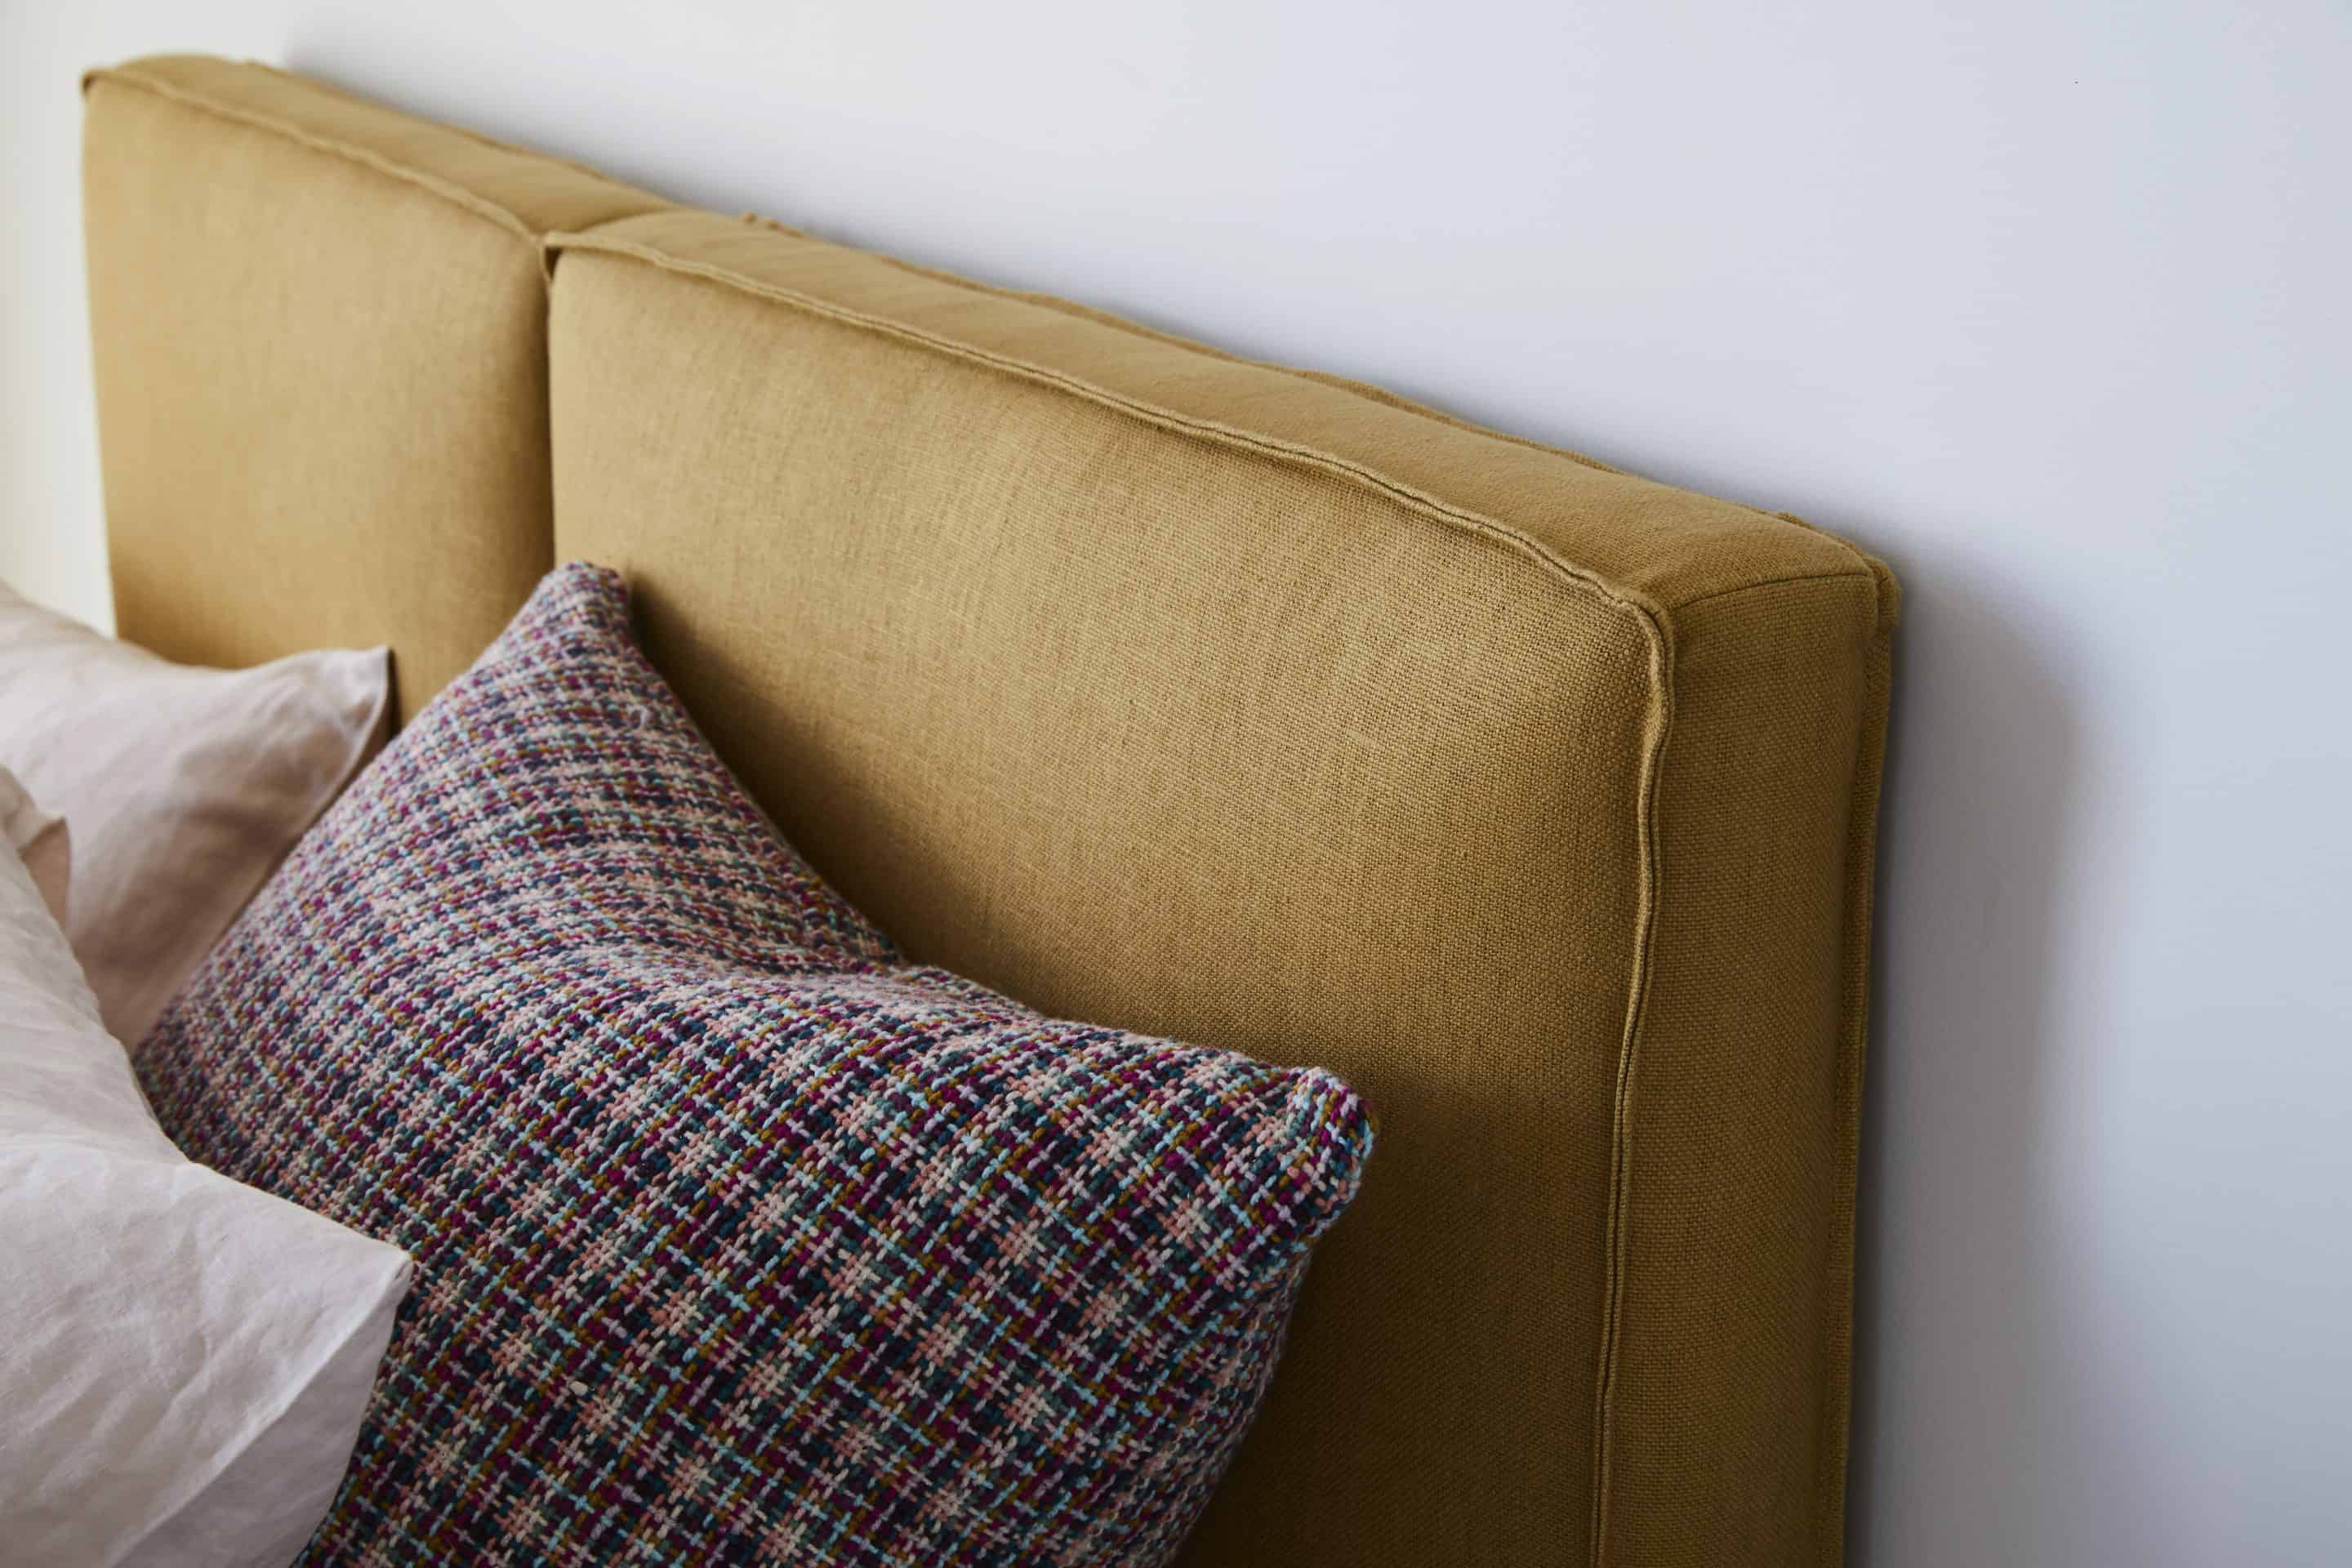 The Armelle upholstered bedhead